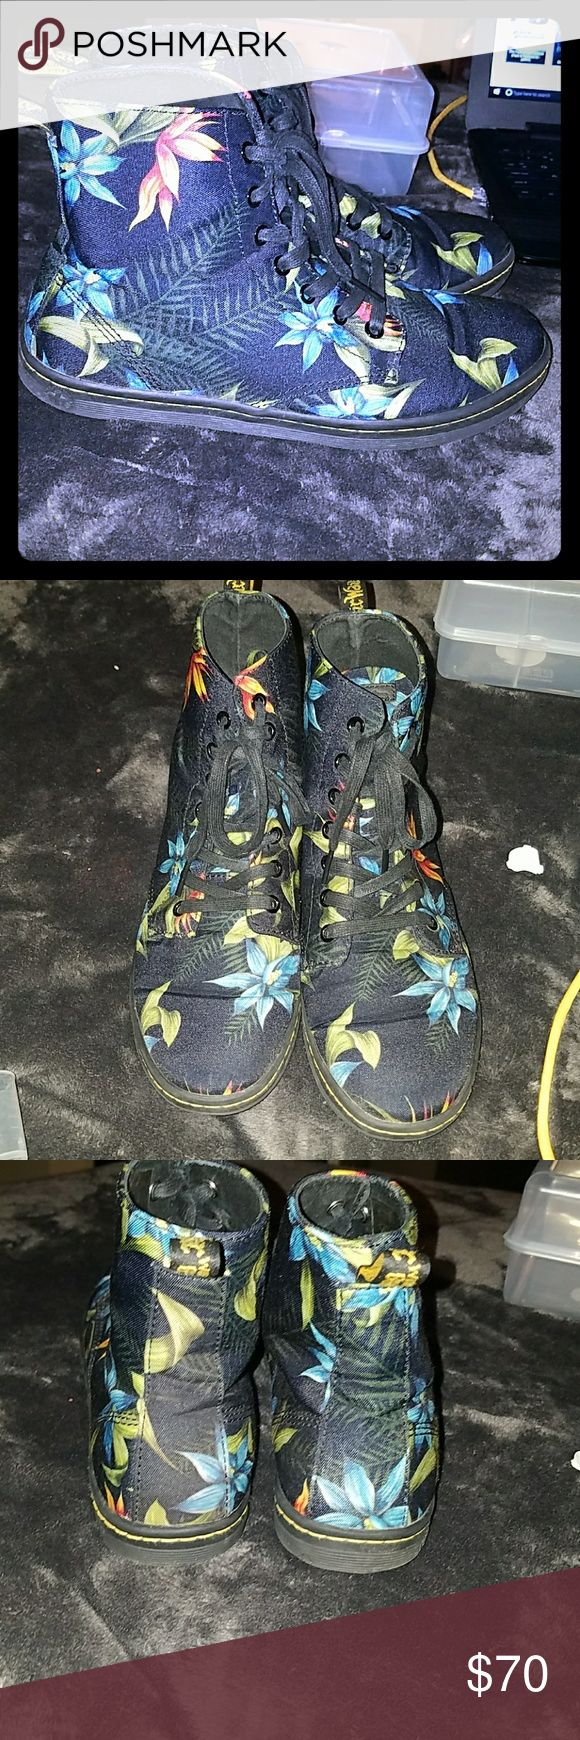 Flower Dr. Martens Flower Mr. Martens clean I only wore them once or twice. Dr. Martens Shoes Ankle Boots & Booties